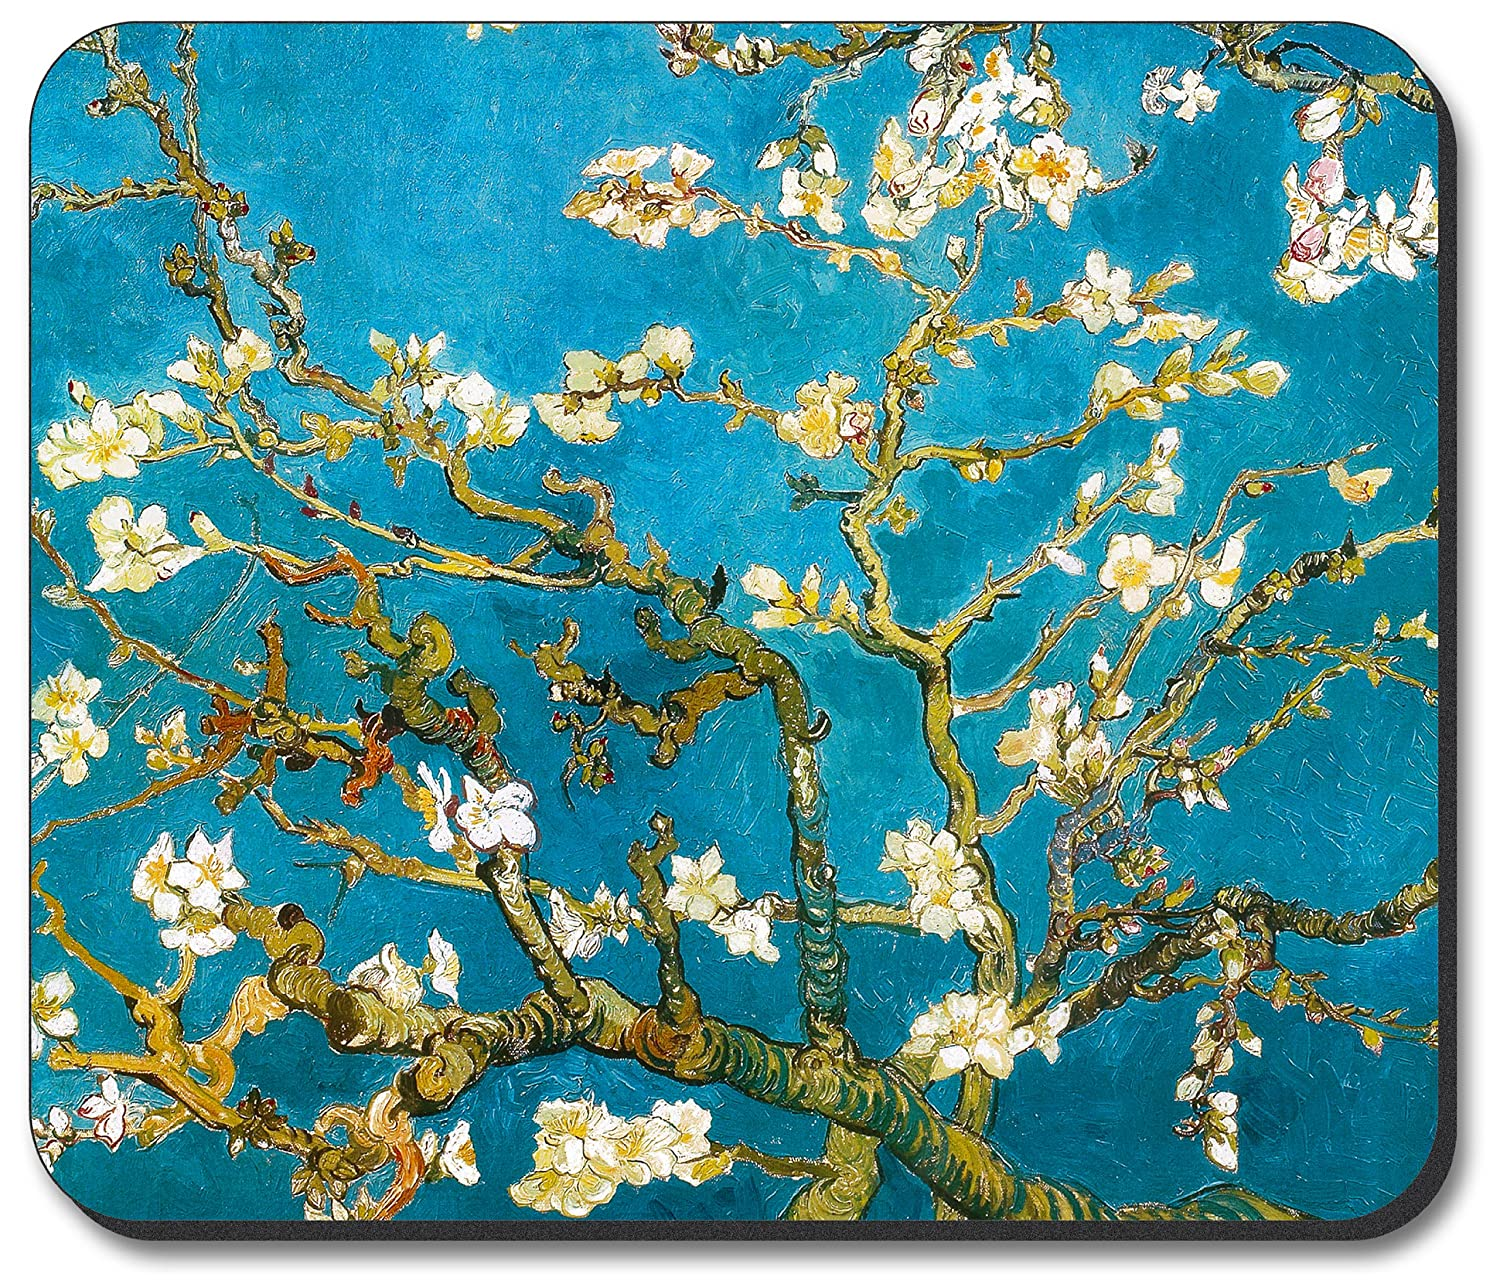 Art Plates® Brand Mouse Pad with Vincent Van Gogh - Almond Blossoms design